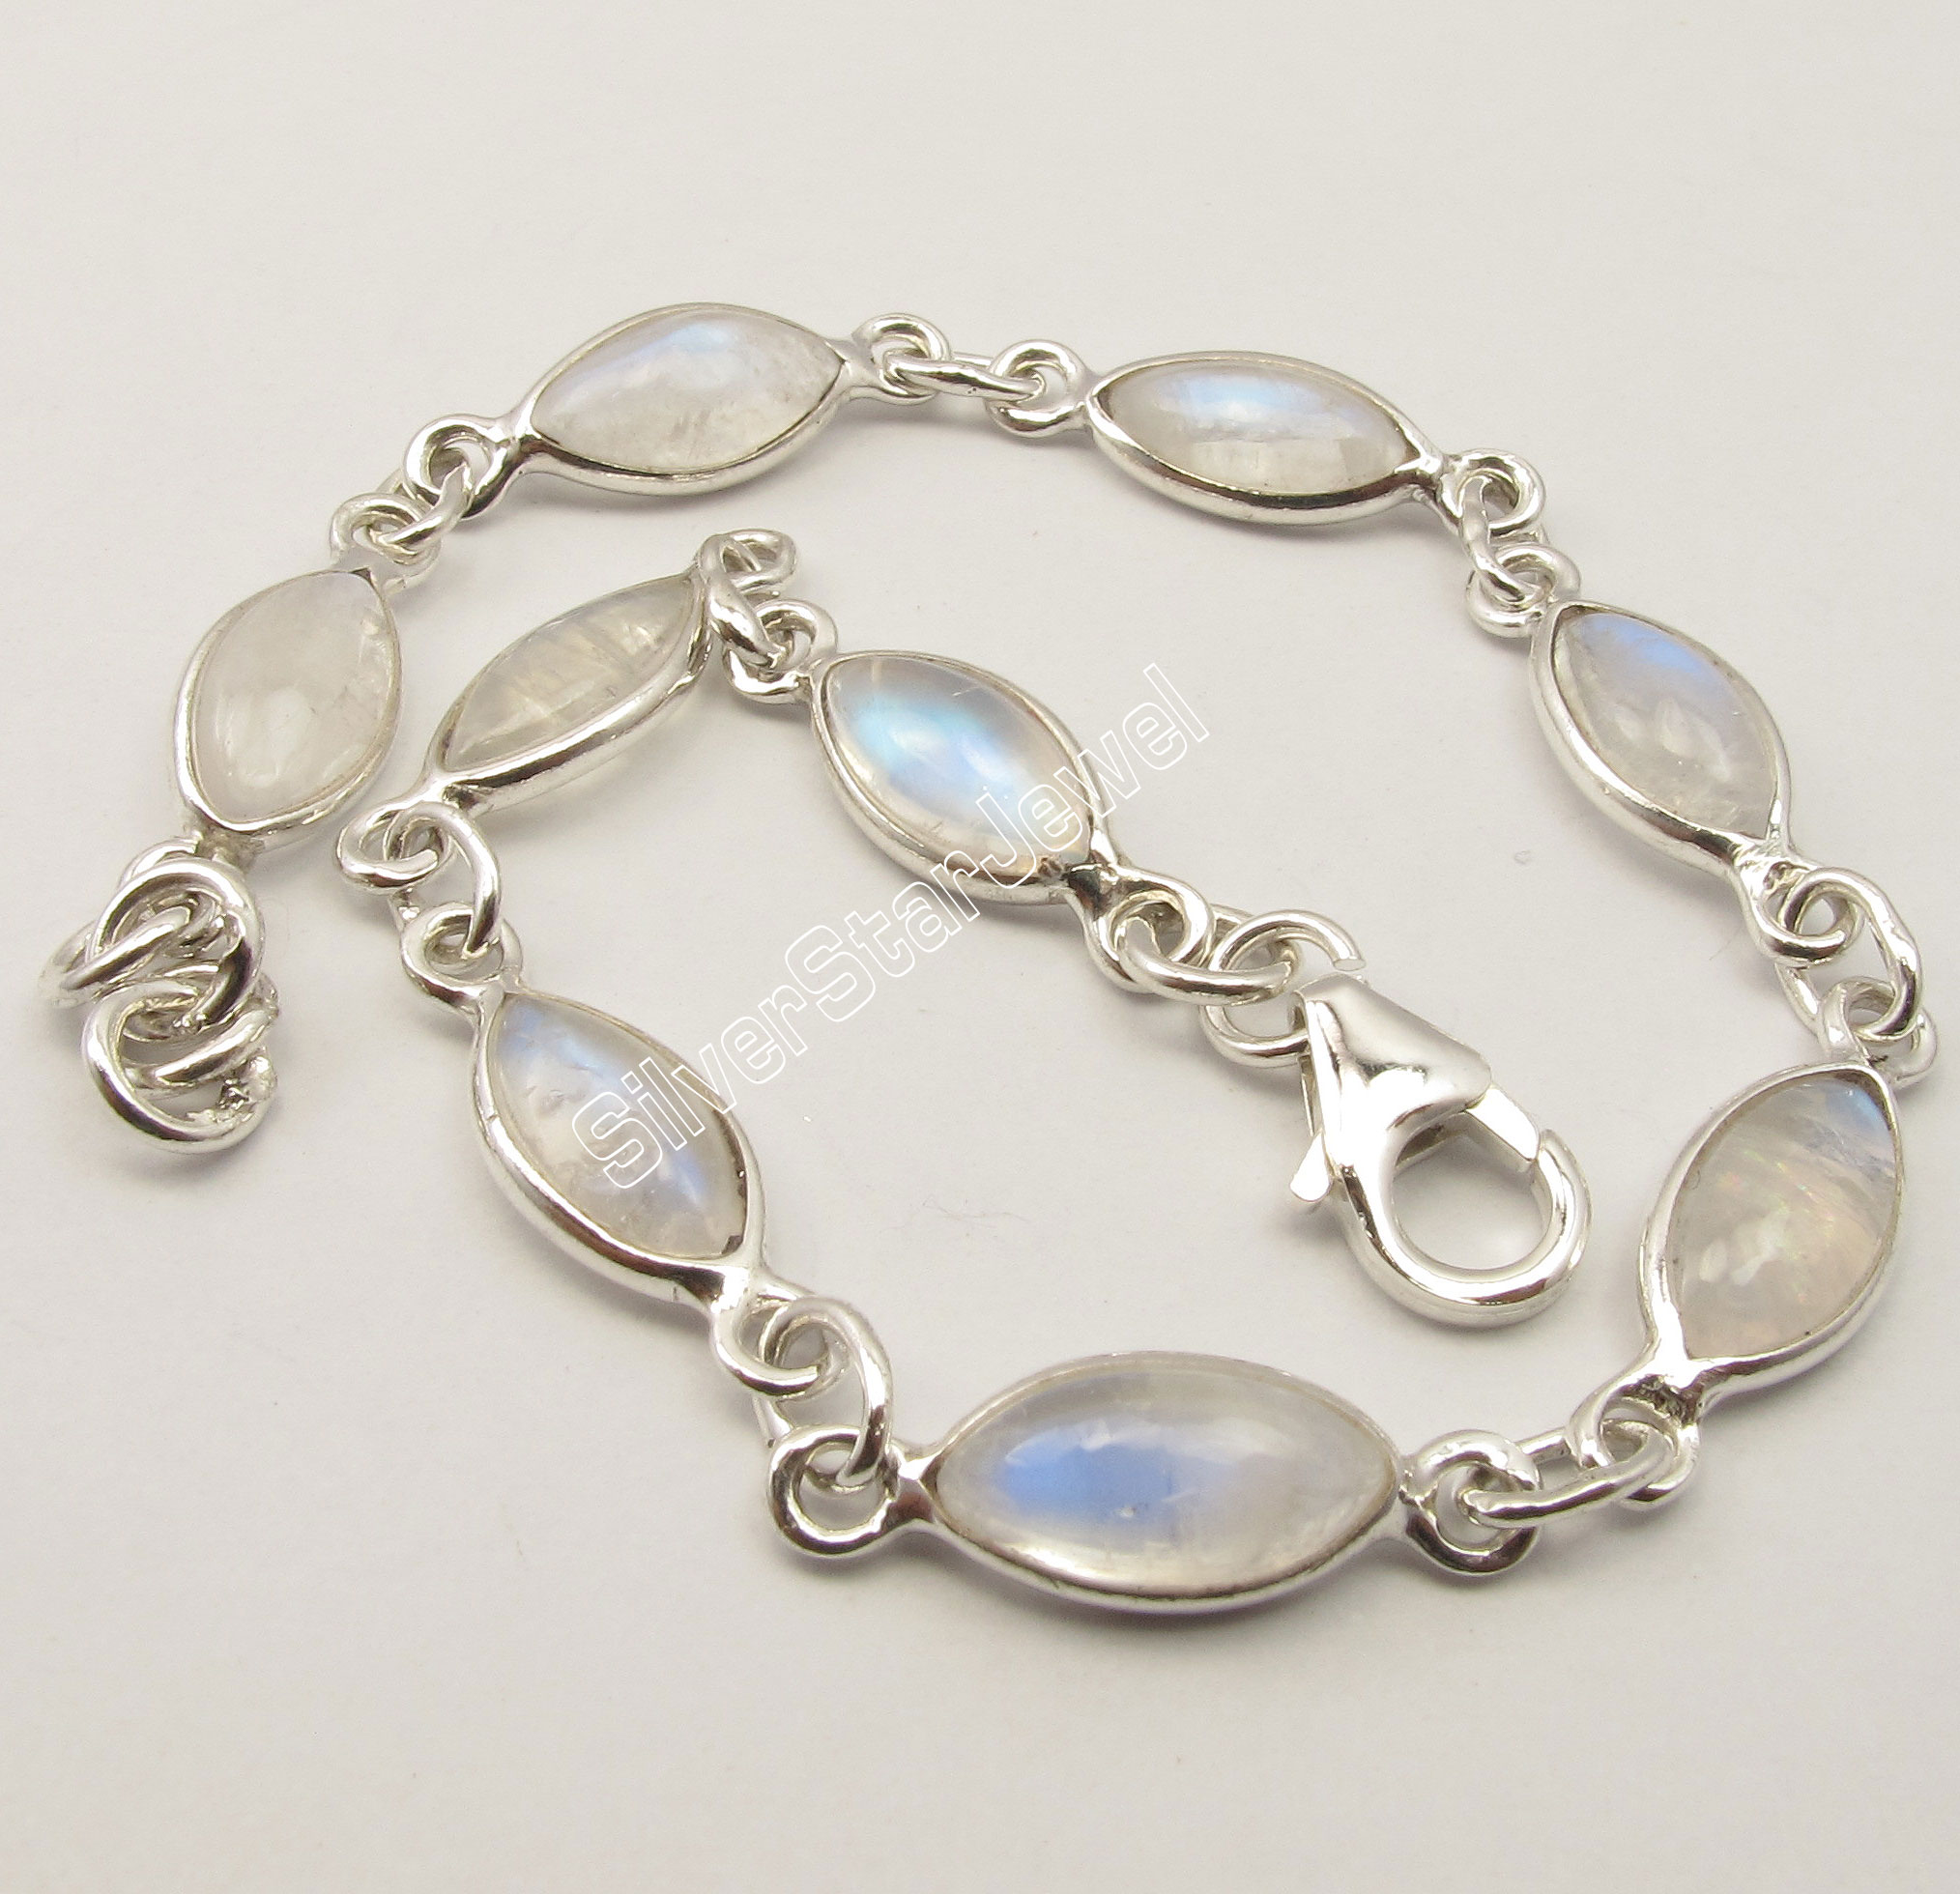 Chanti International Silver MARQUISE RAINBOW MOONSTONE LOVELY Bracelet 7 7/8 6.1 Grams